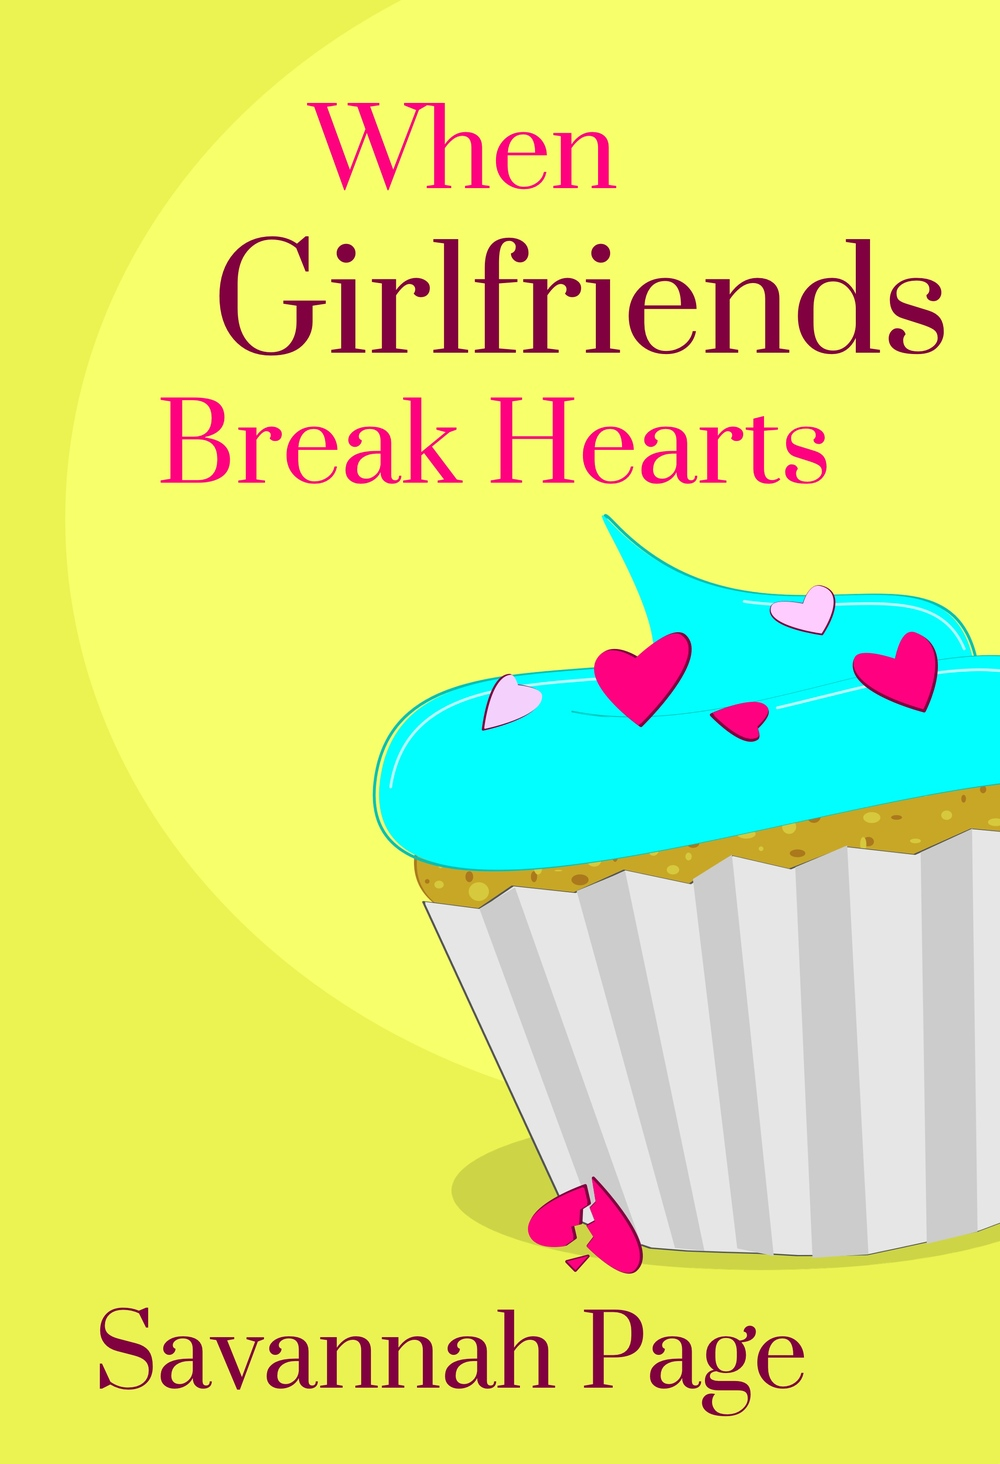 When Girlfriends Break Hearts By Savannah Page - EBook Cover - Sneak Peek